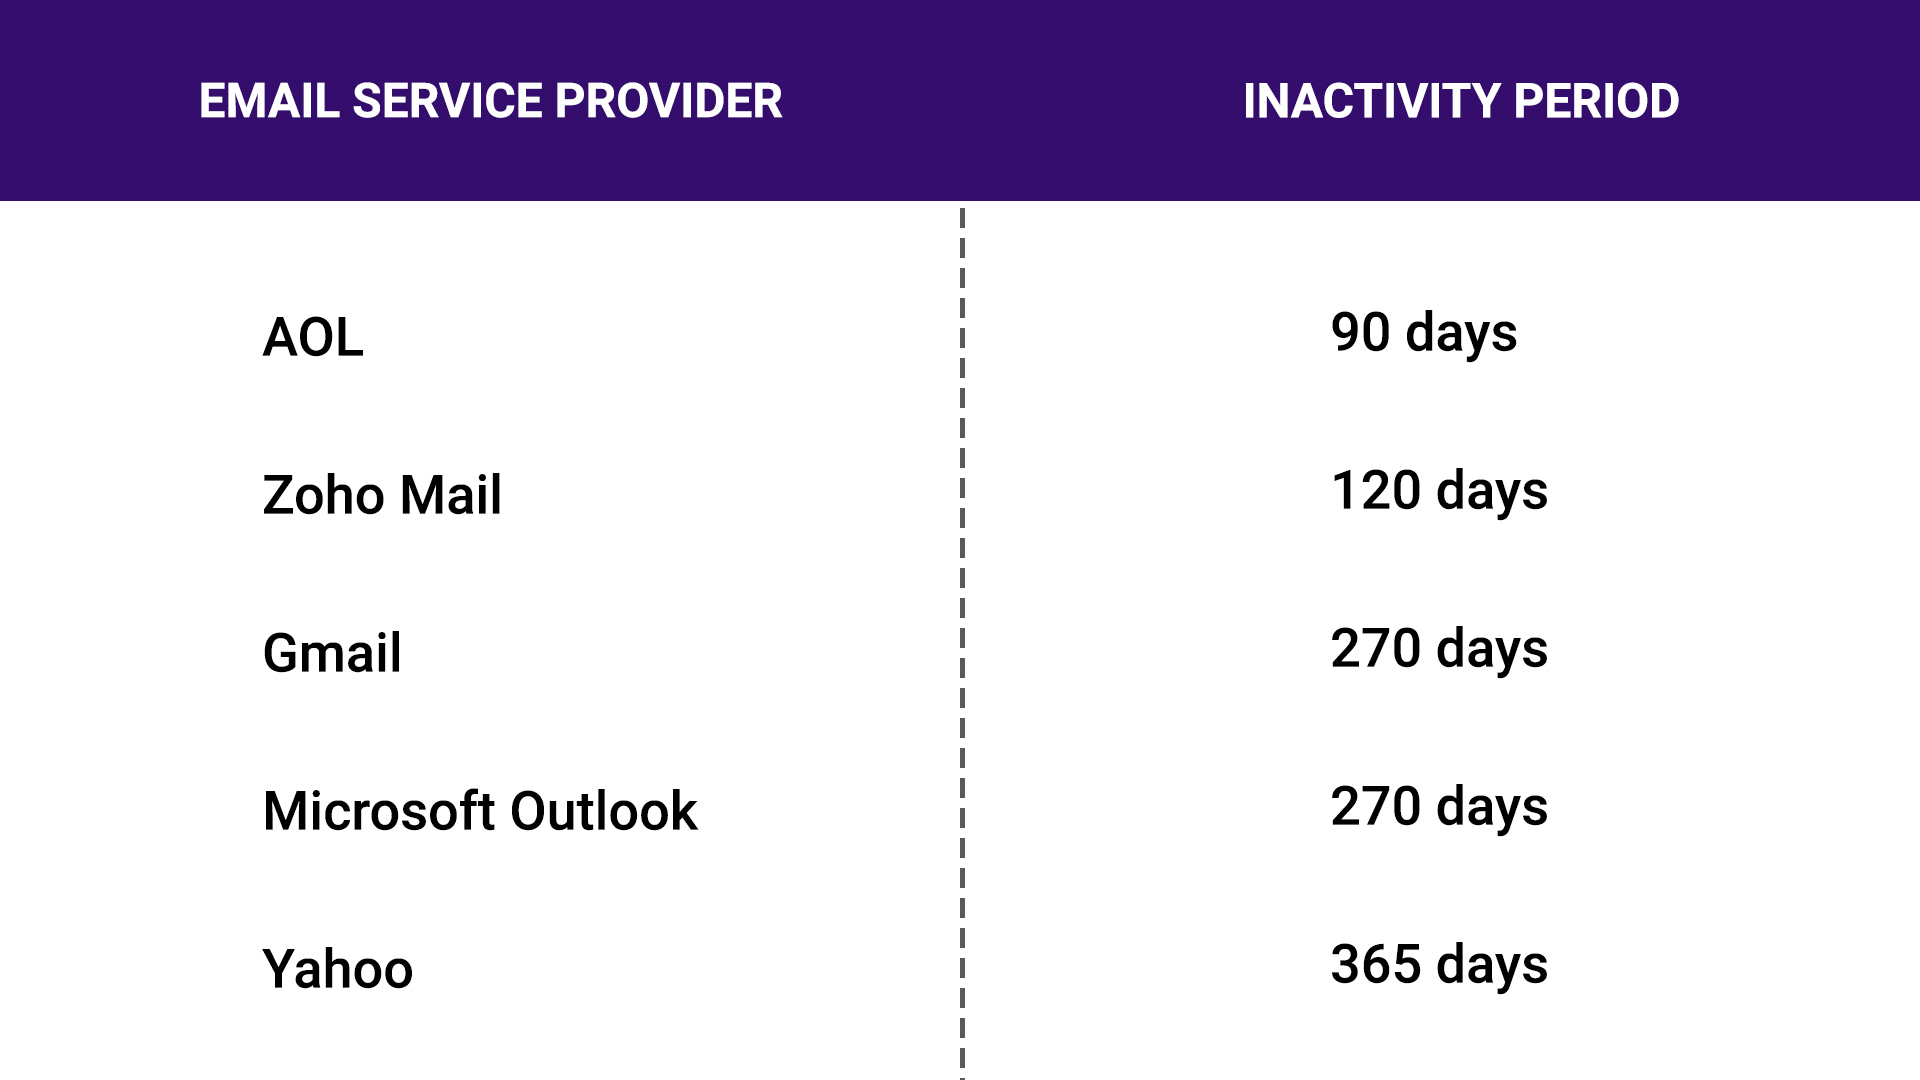 Email inactivity period defined by different ESPs